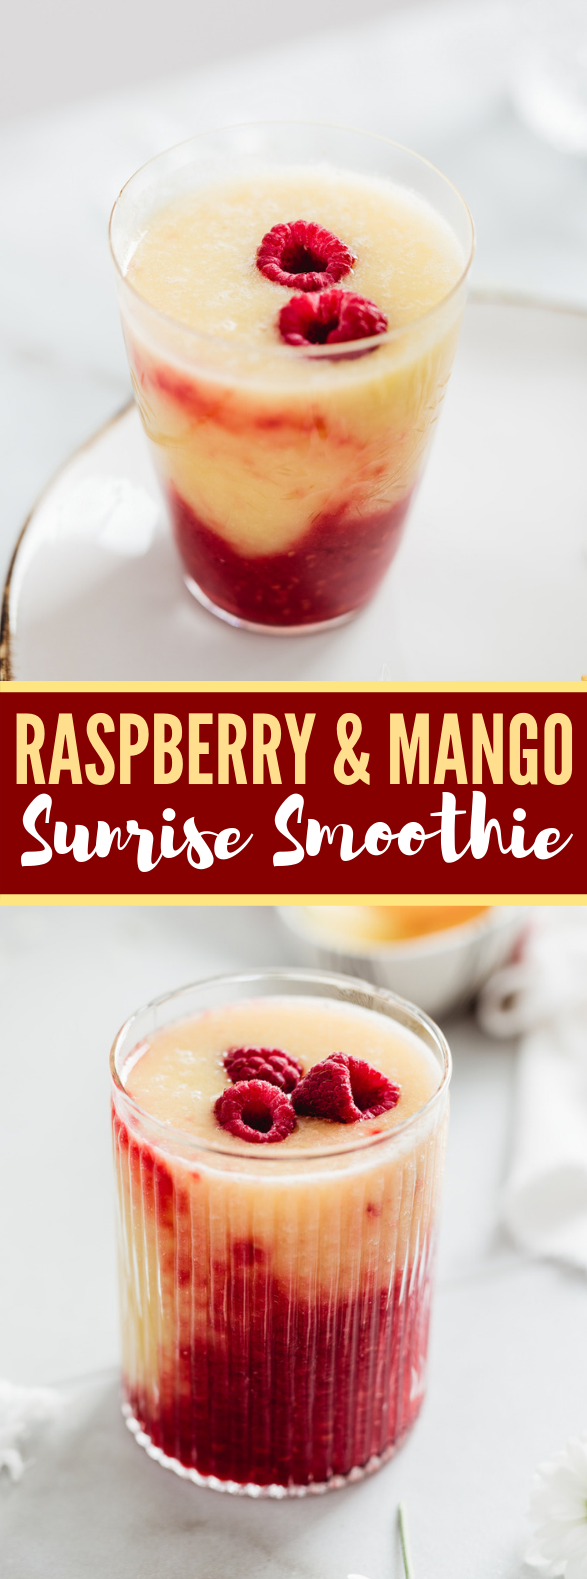 Raspberry Mango Sunrise Smoothie Recipe #drinks #summer